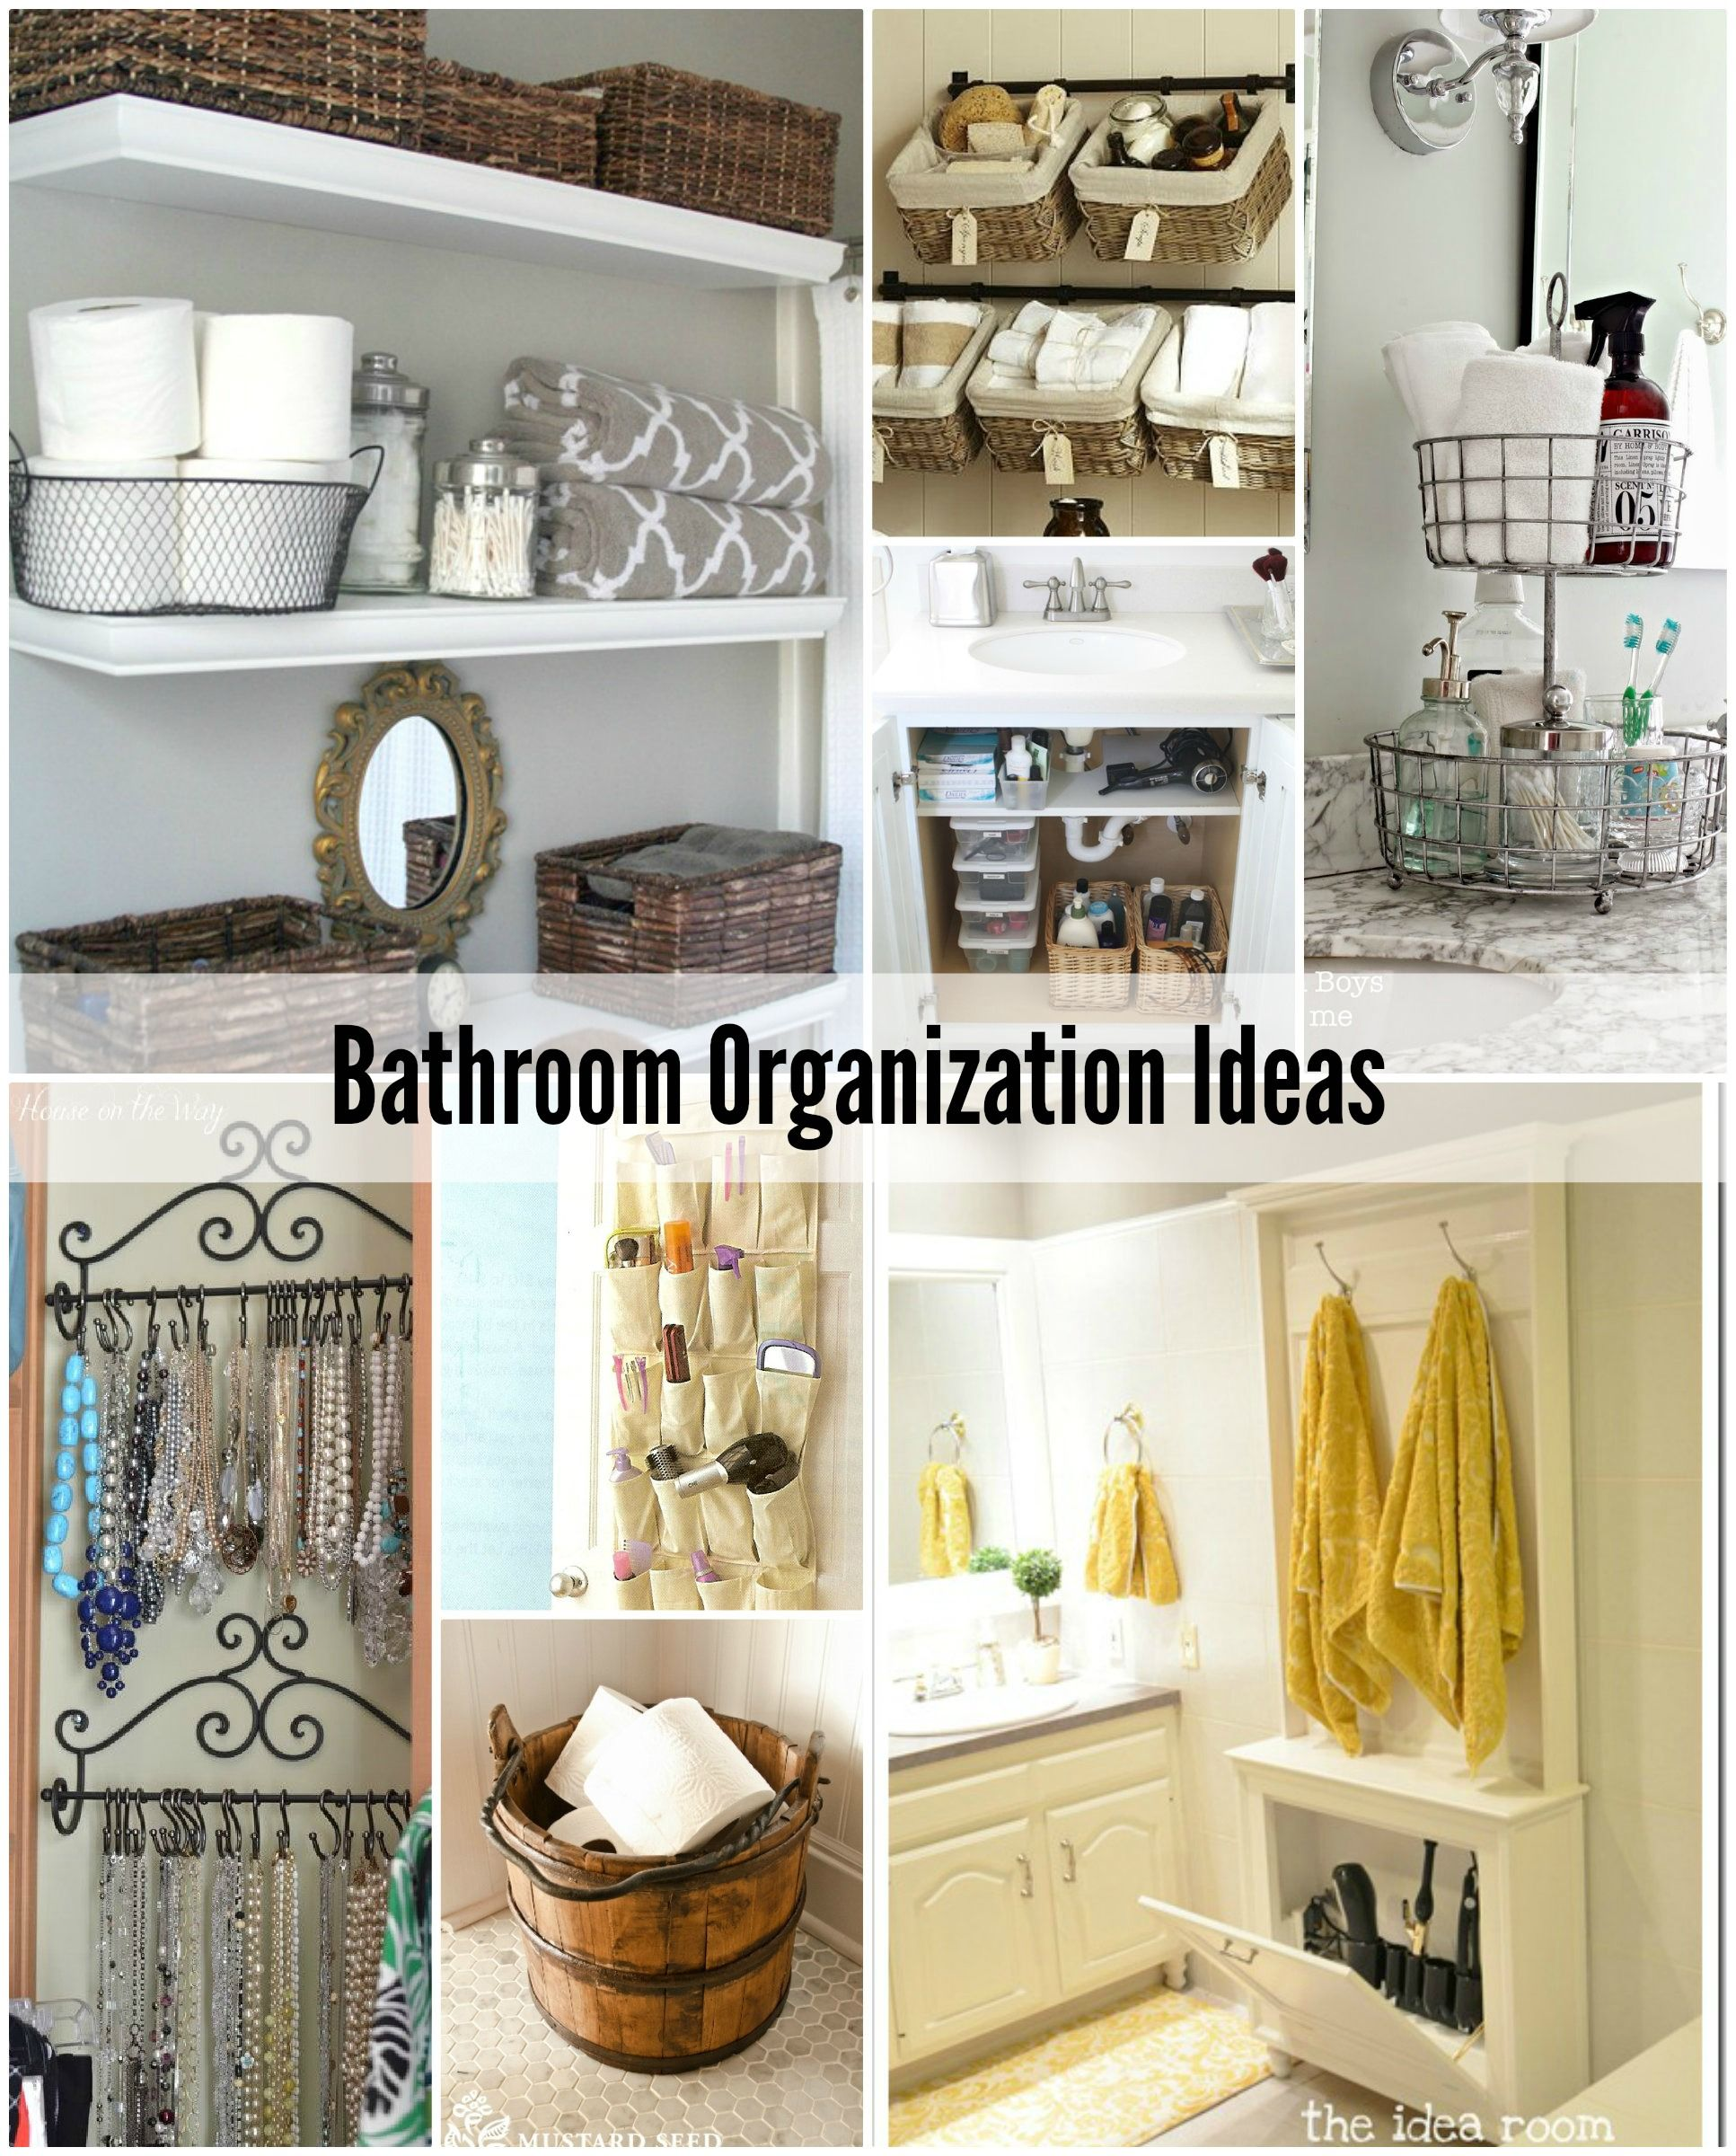 Organization Bathroom Tips As You Know I Am On A Mission To Get My House In Tip Top Shape We Have Way Too Much Clutter And It Is Time